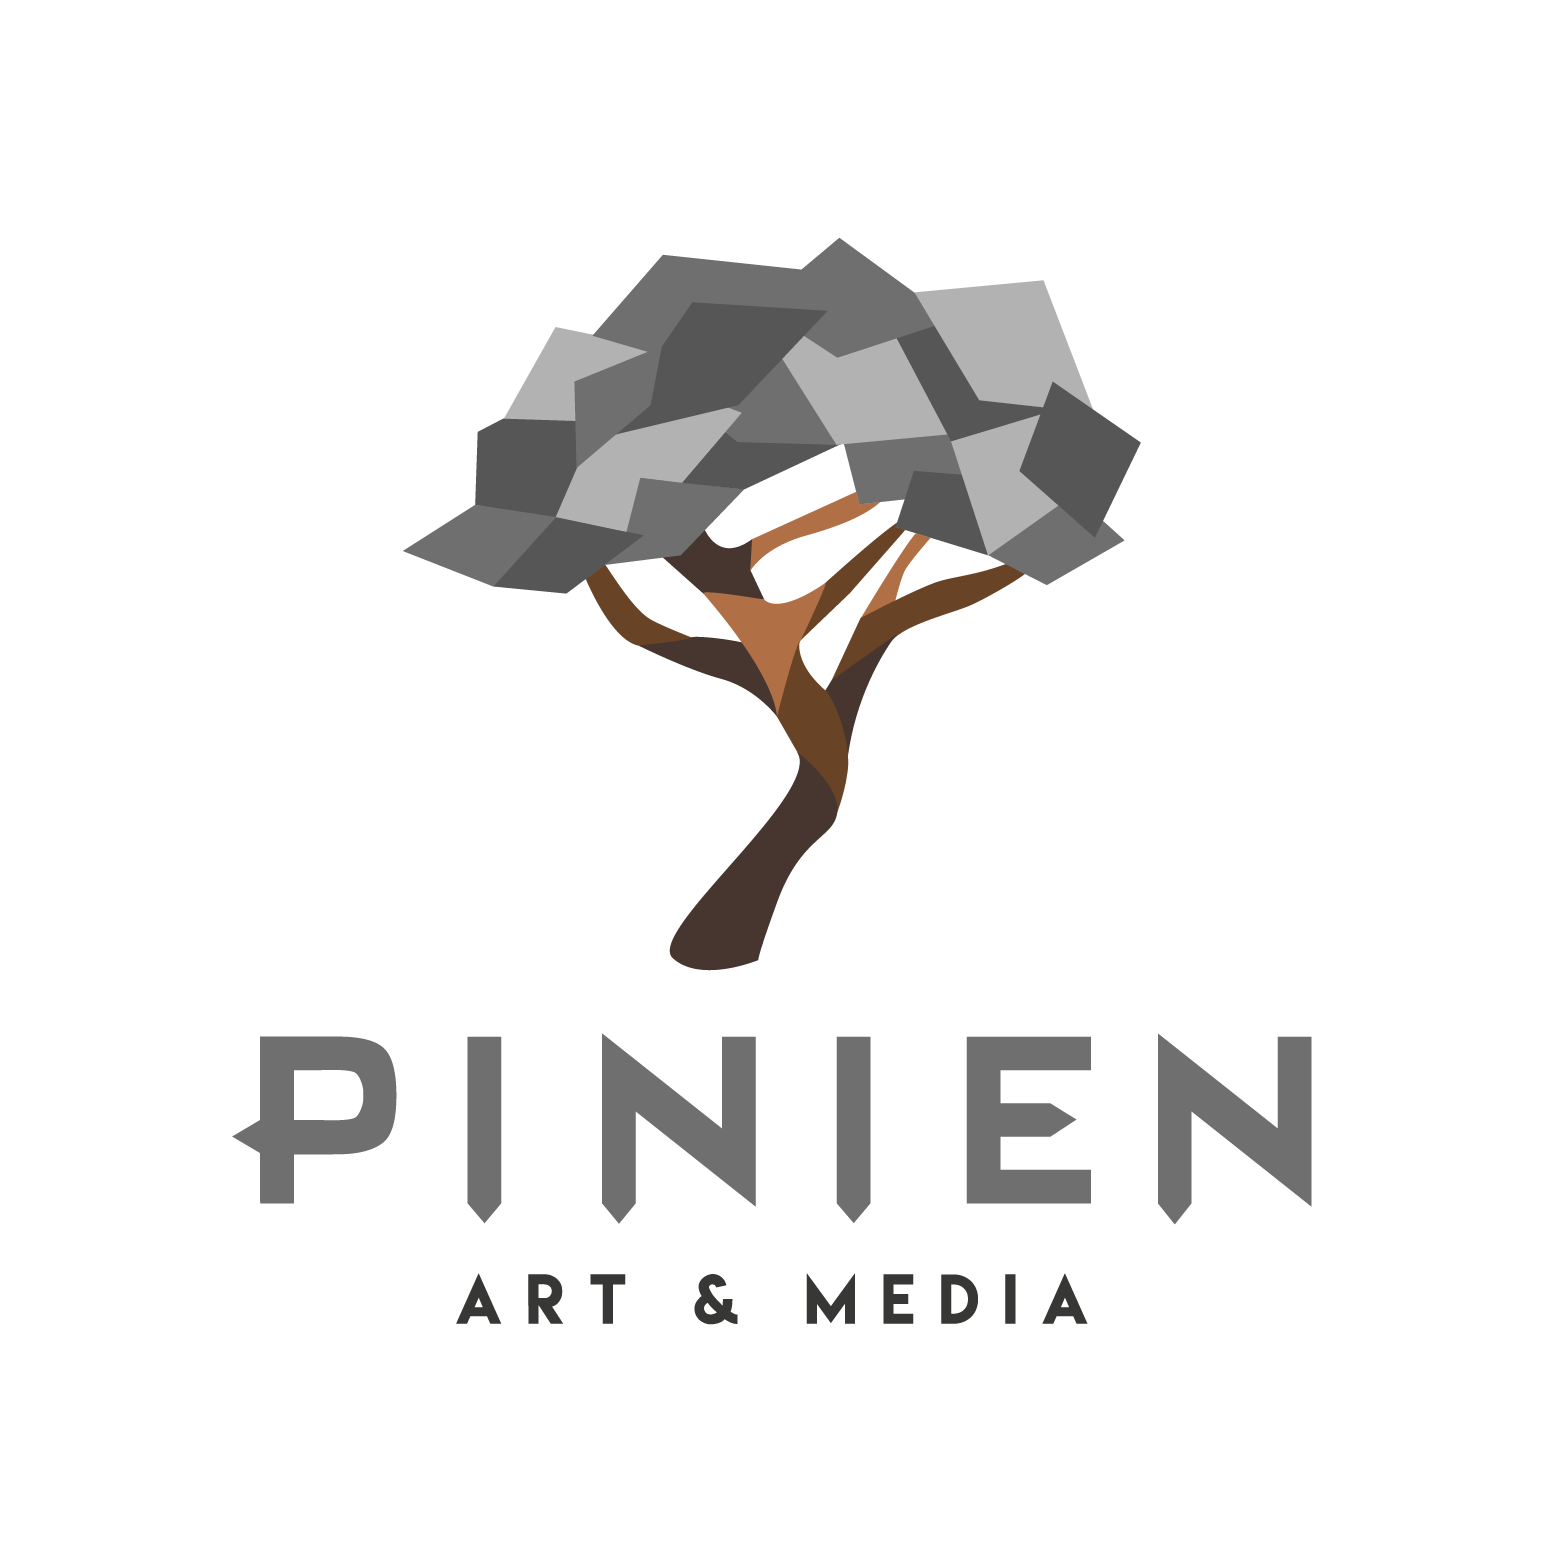 Pinien Art & Media GmbH